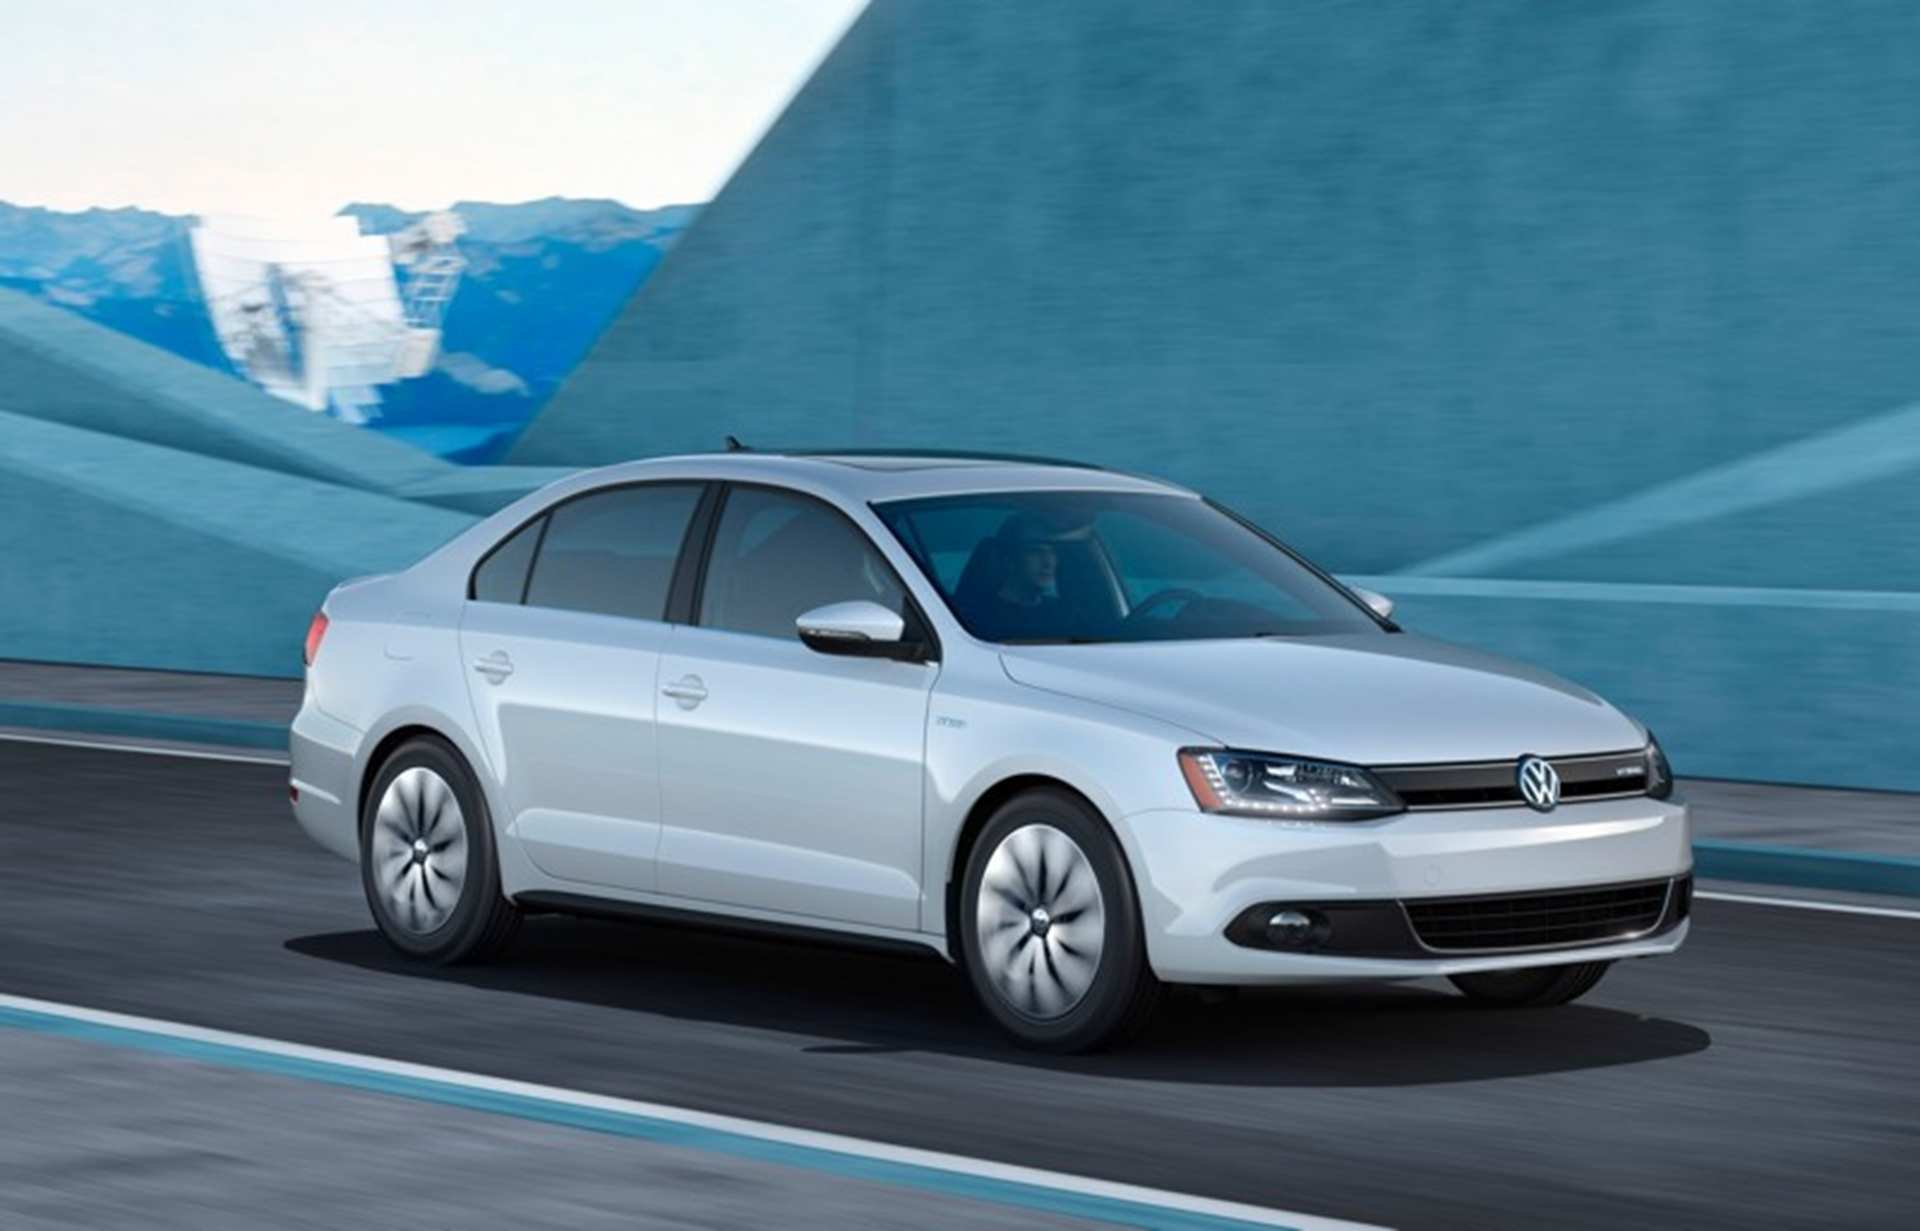 The Volkswagen Jetta Hybrid